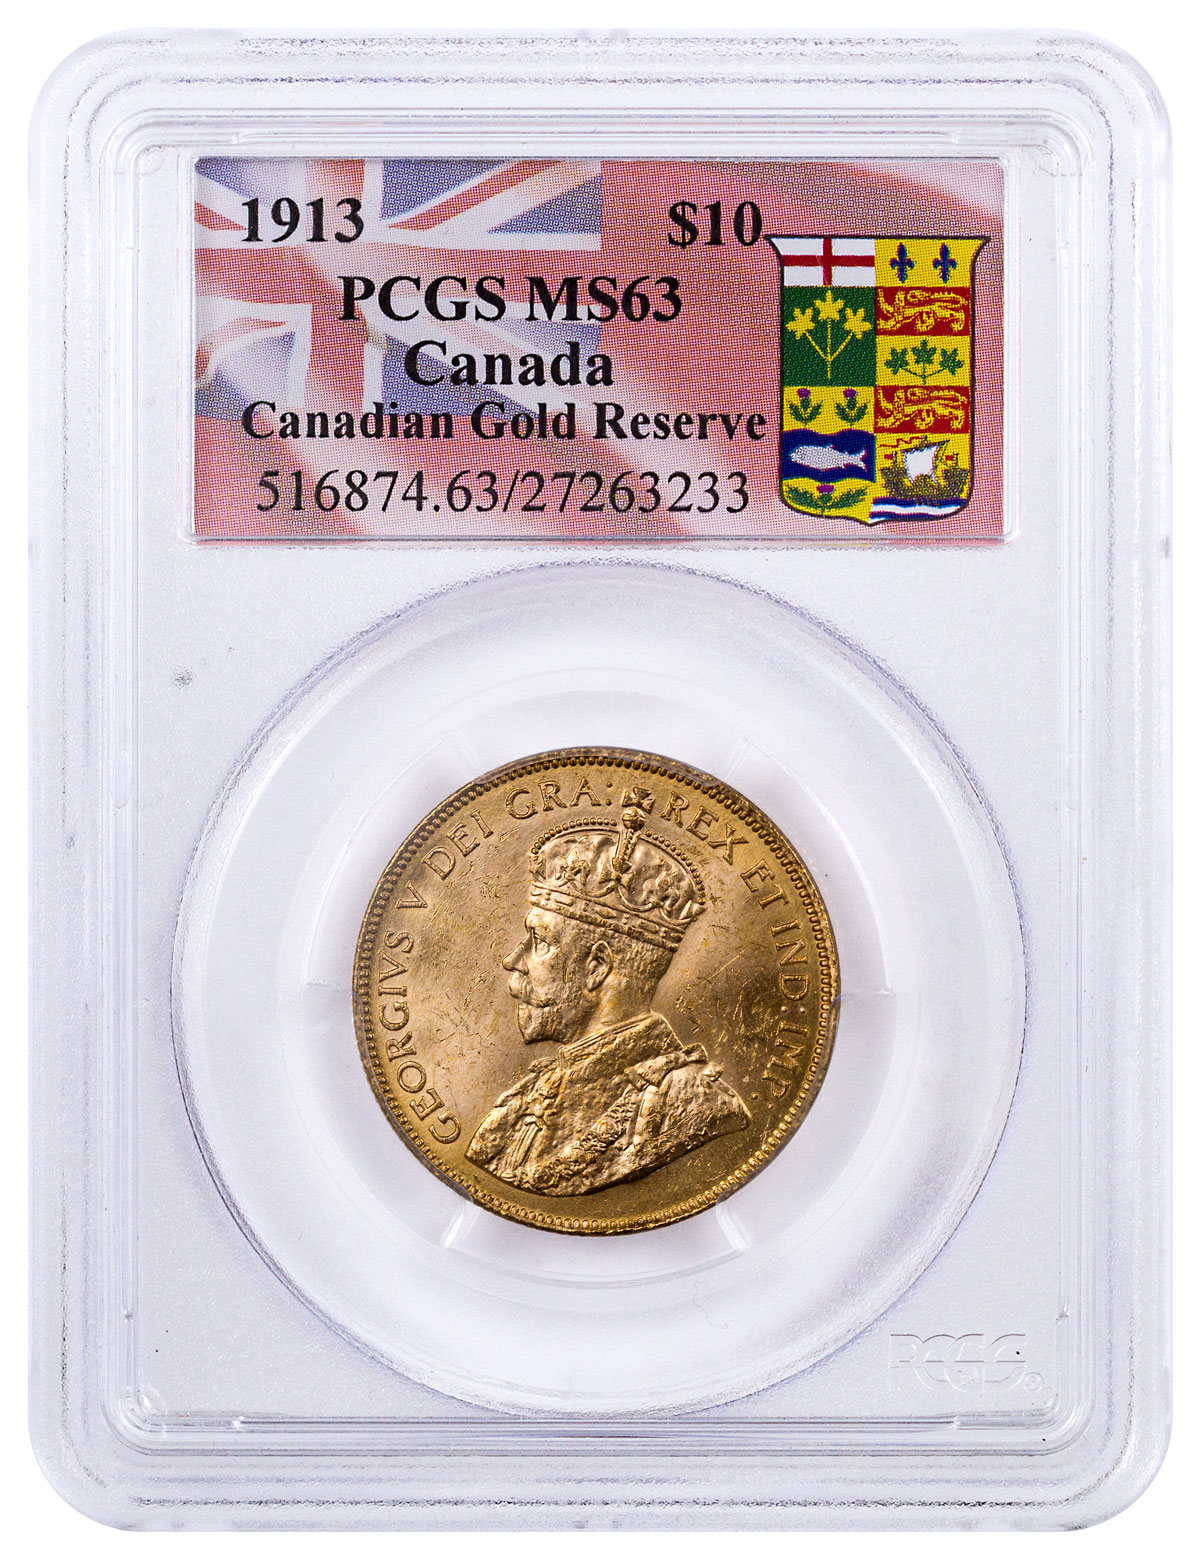 10 Gold Smoky Eye Tutorials For Fall: 1913 Canada $10 Gold Reserve PCGS MS63 (Canada Gold